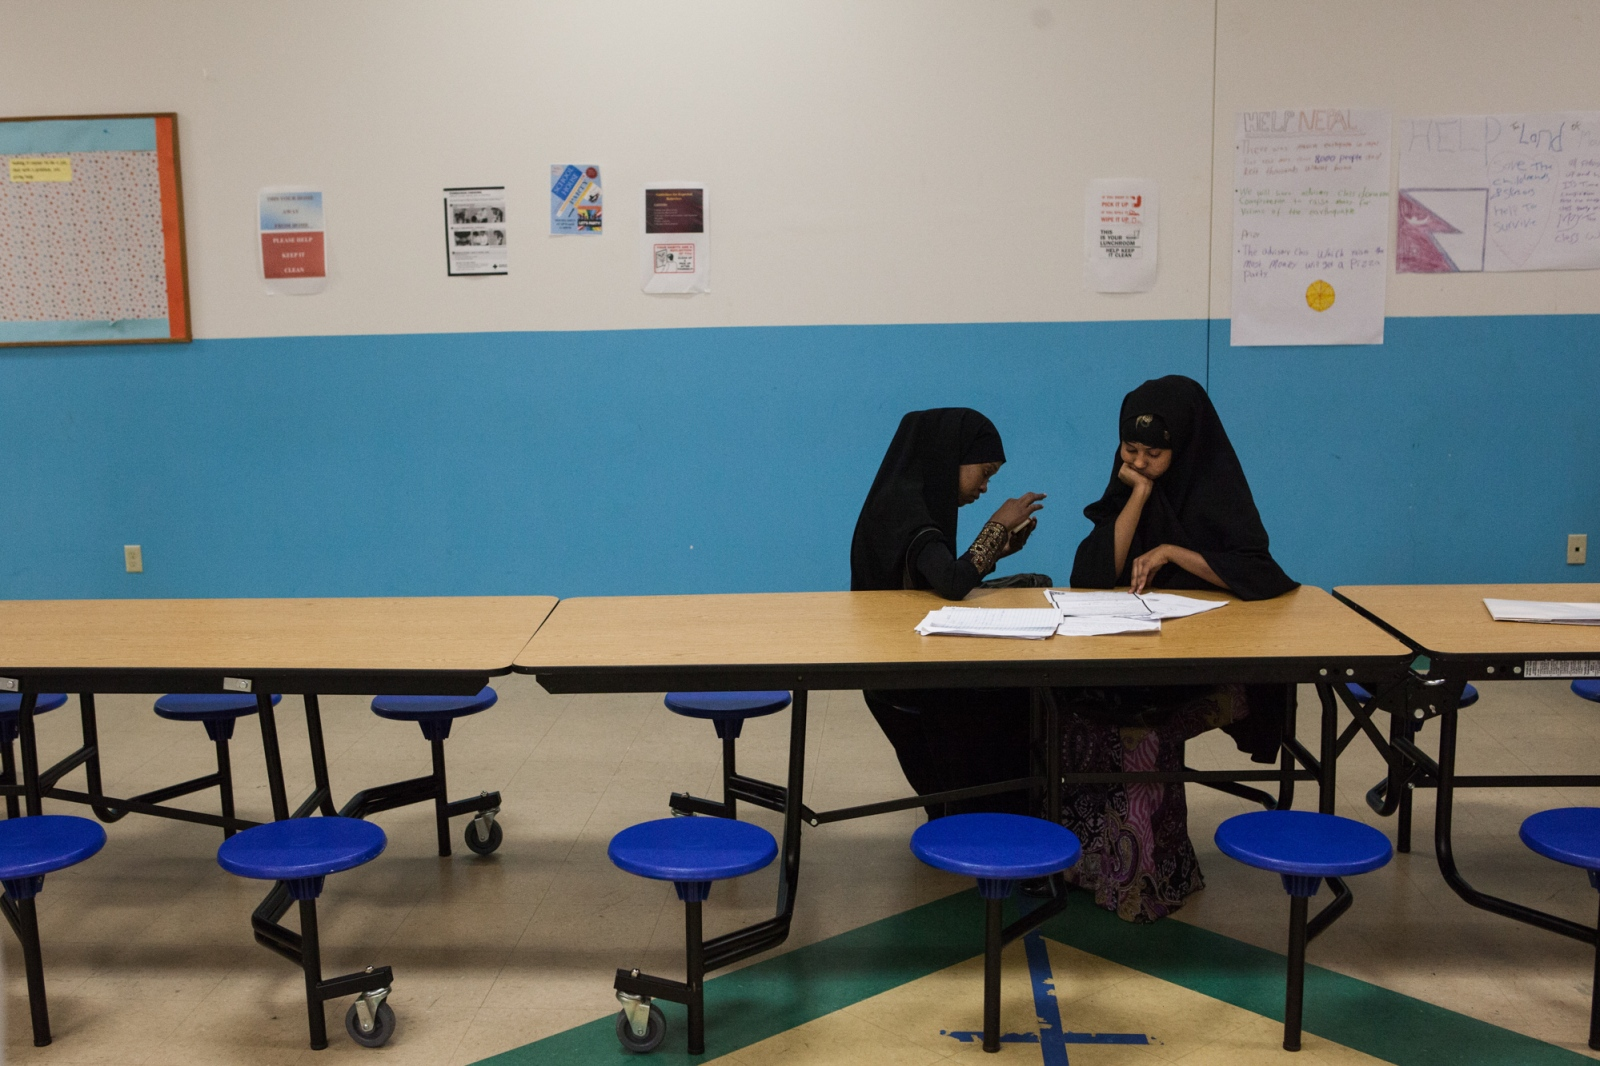 Two girls use their lunch break to study at Lincoln International High School in Minneapolis. Somali parents are attracted to charter schools like Lincoln, where most students are Somali, because they feel it will help their kids preserve their culture.